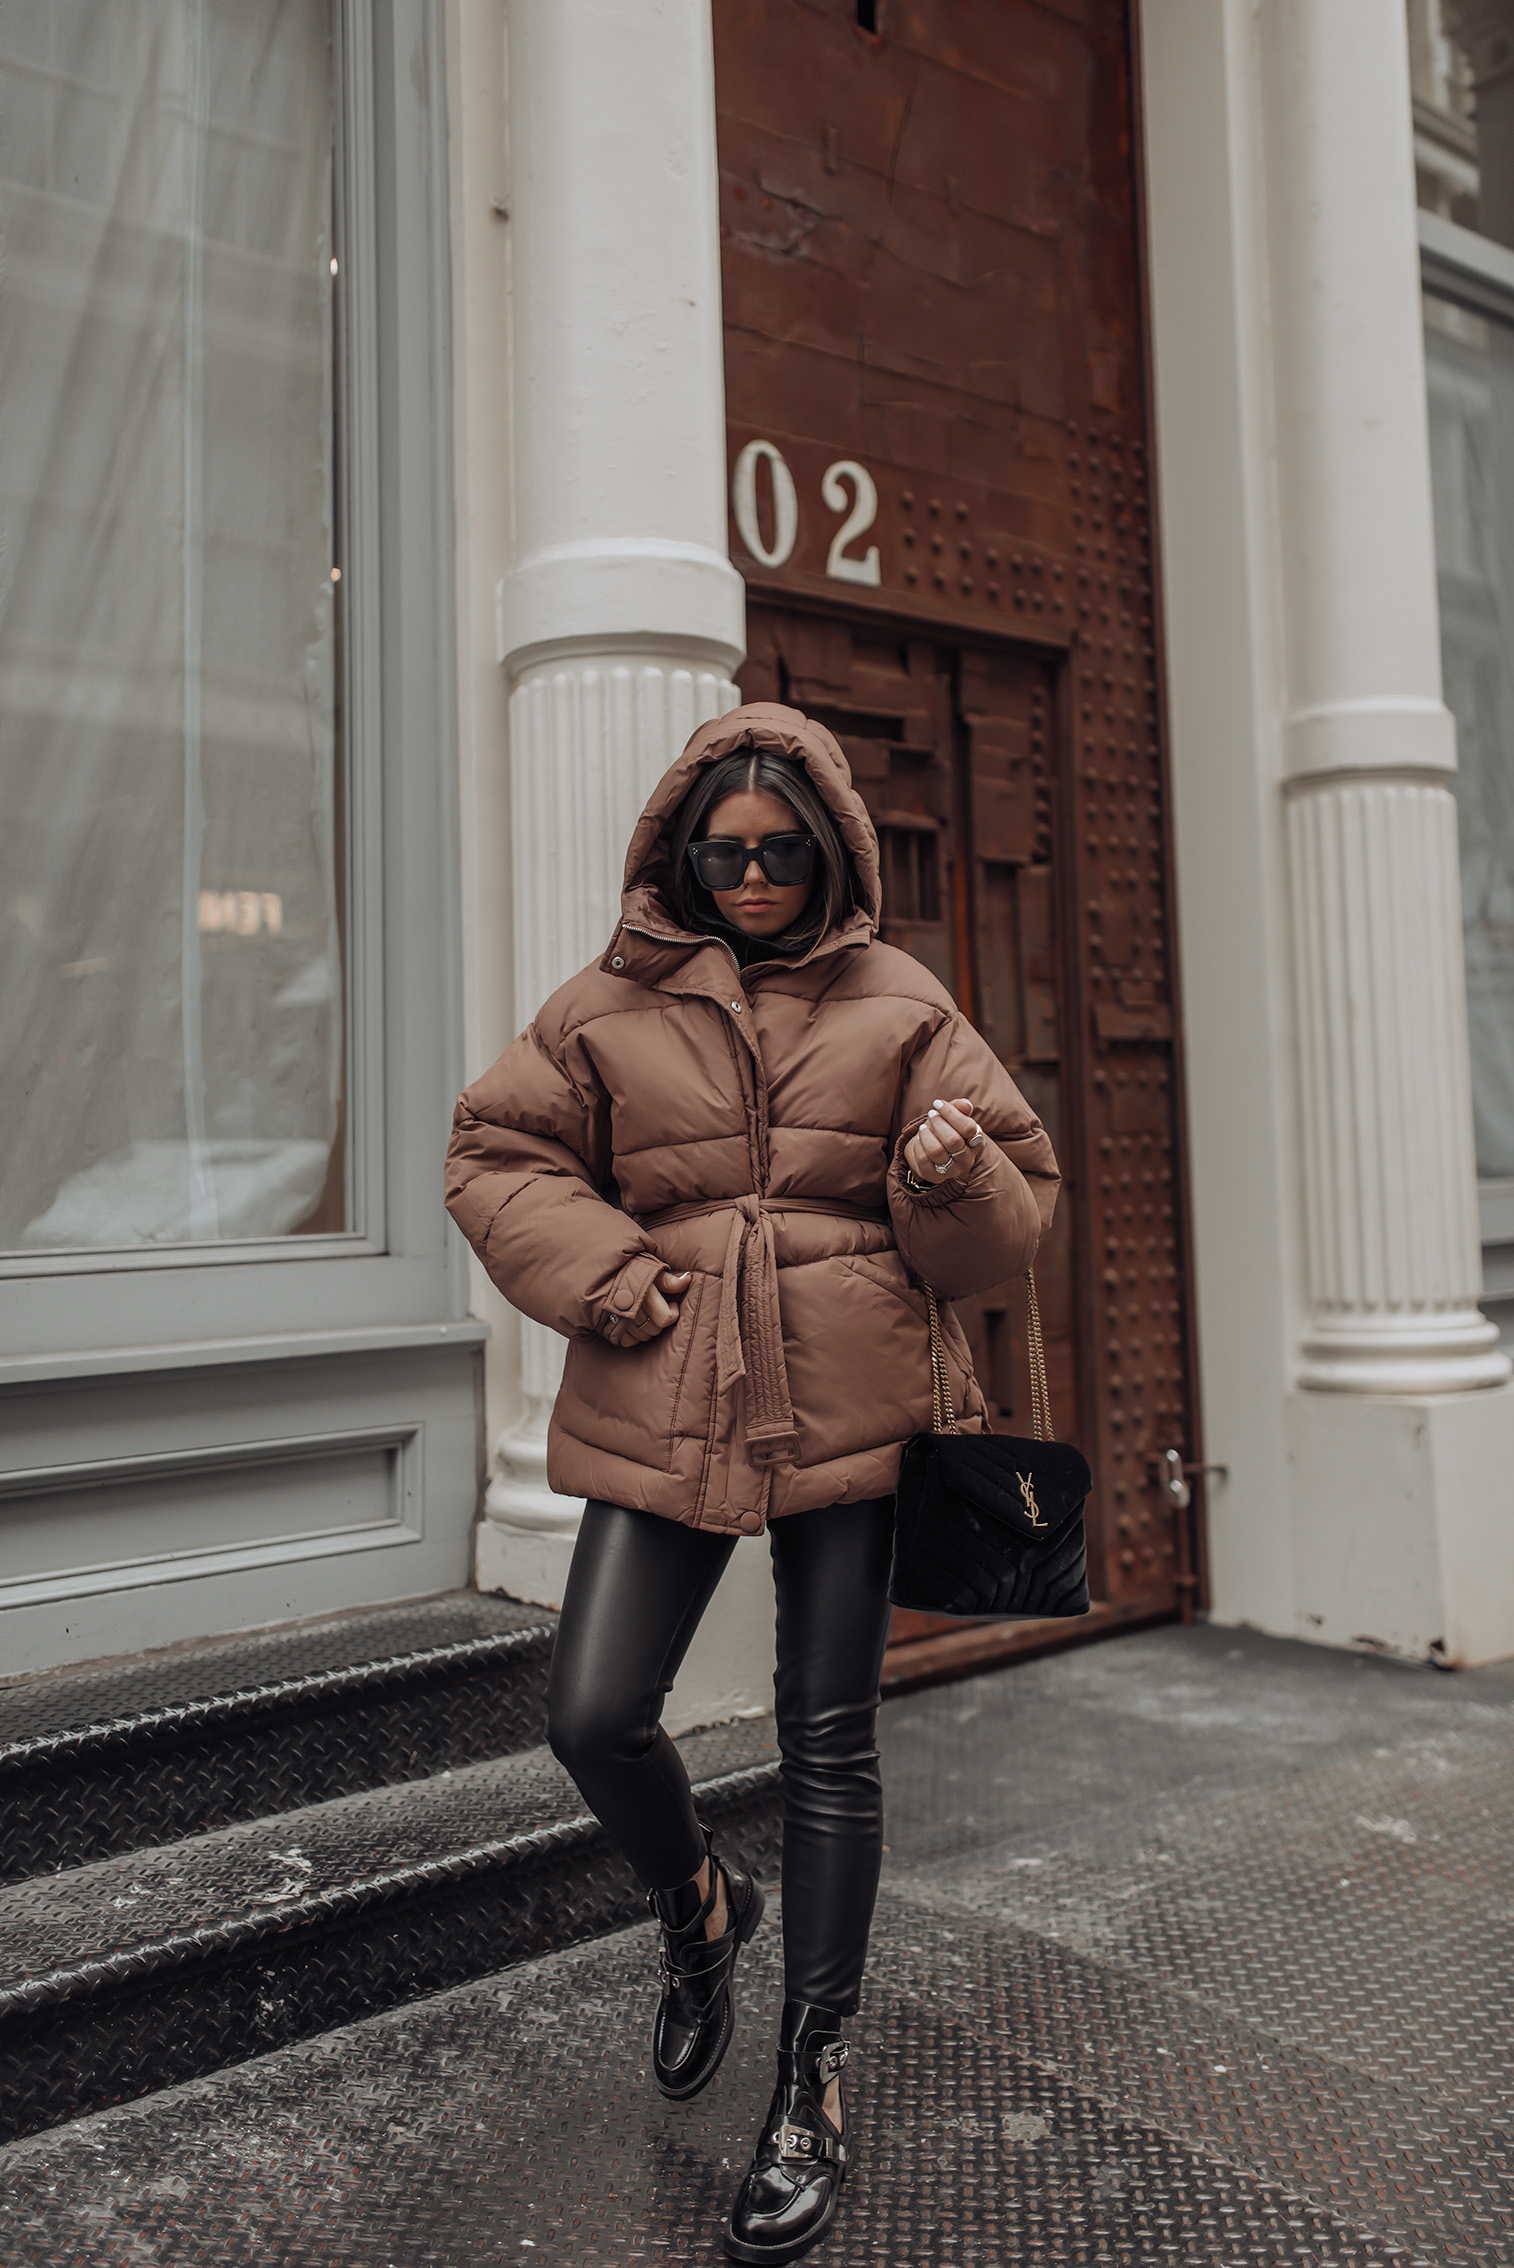 Oversized Puffer Coat   Faux Leather Pants   Buckle boots (Similar)    Winter is coming. No but really, it's getting very chilly. Instead of hibernating, I found this super fab oversized puffer coat from Nellycom that packs some major heat. It's definitely made for the super chilly days. I made the mistake a few weeks ago of wearing it out while in 50 degree weather and ended up removing because it was so warm. But it's getting great use in this 30 degree we are having in NYC at the moment! #streetstyle #puffercoat